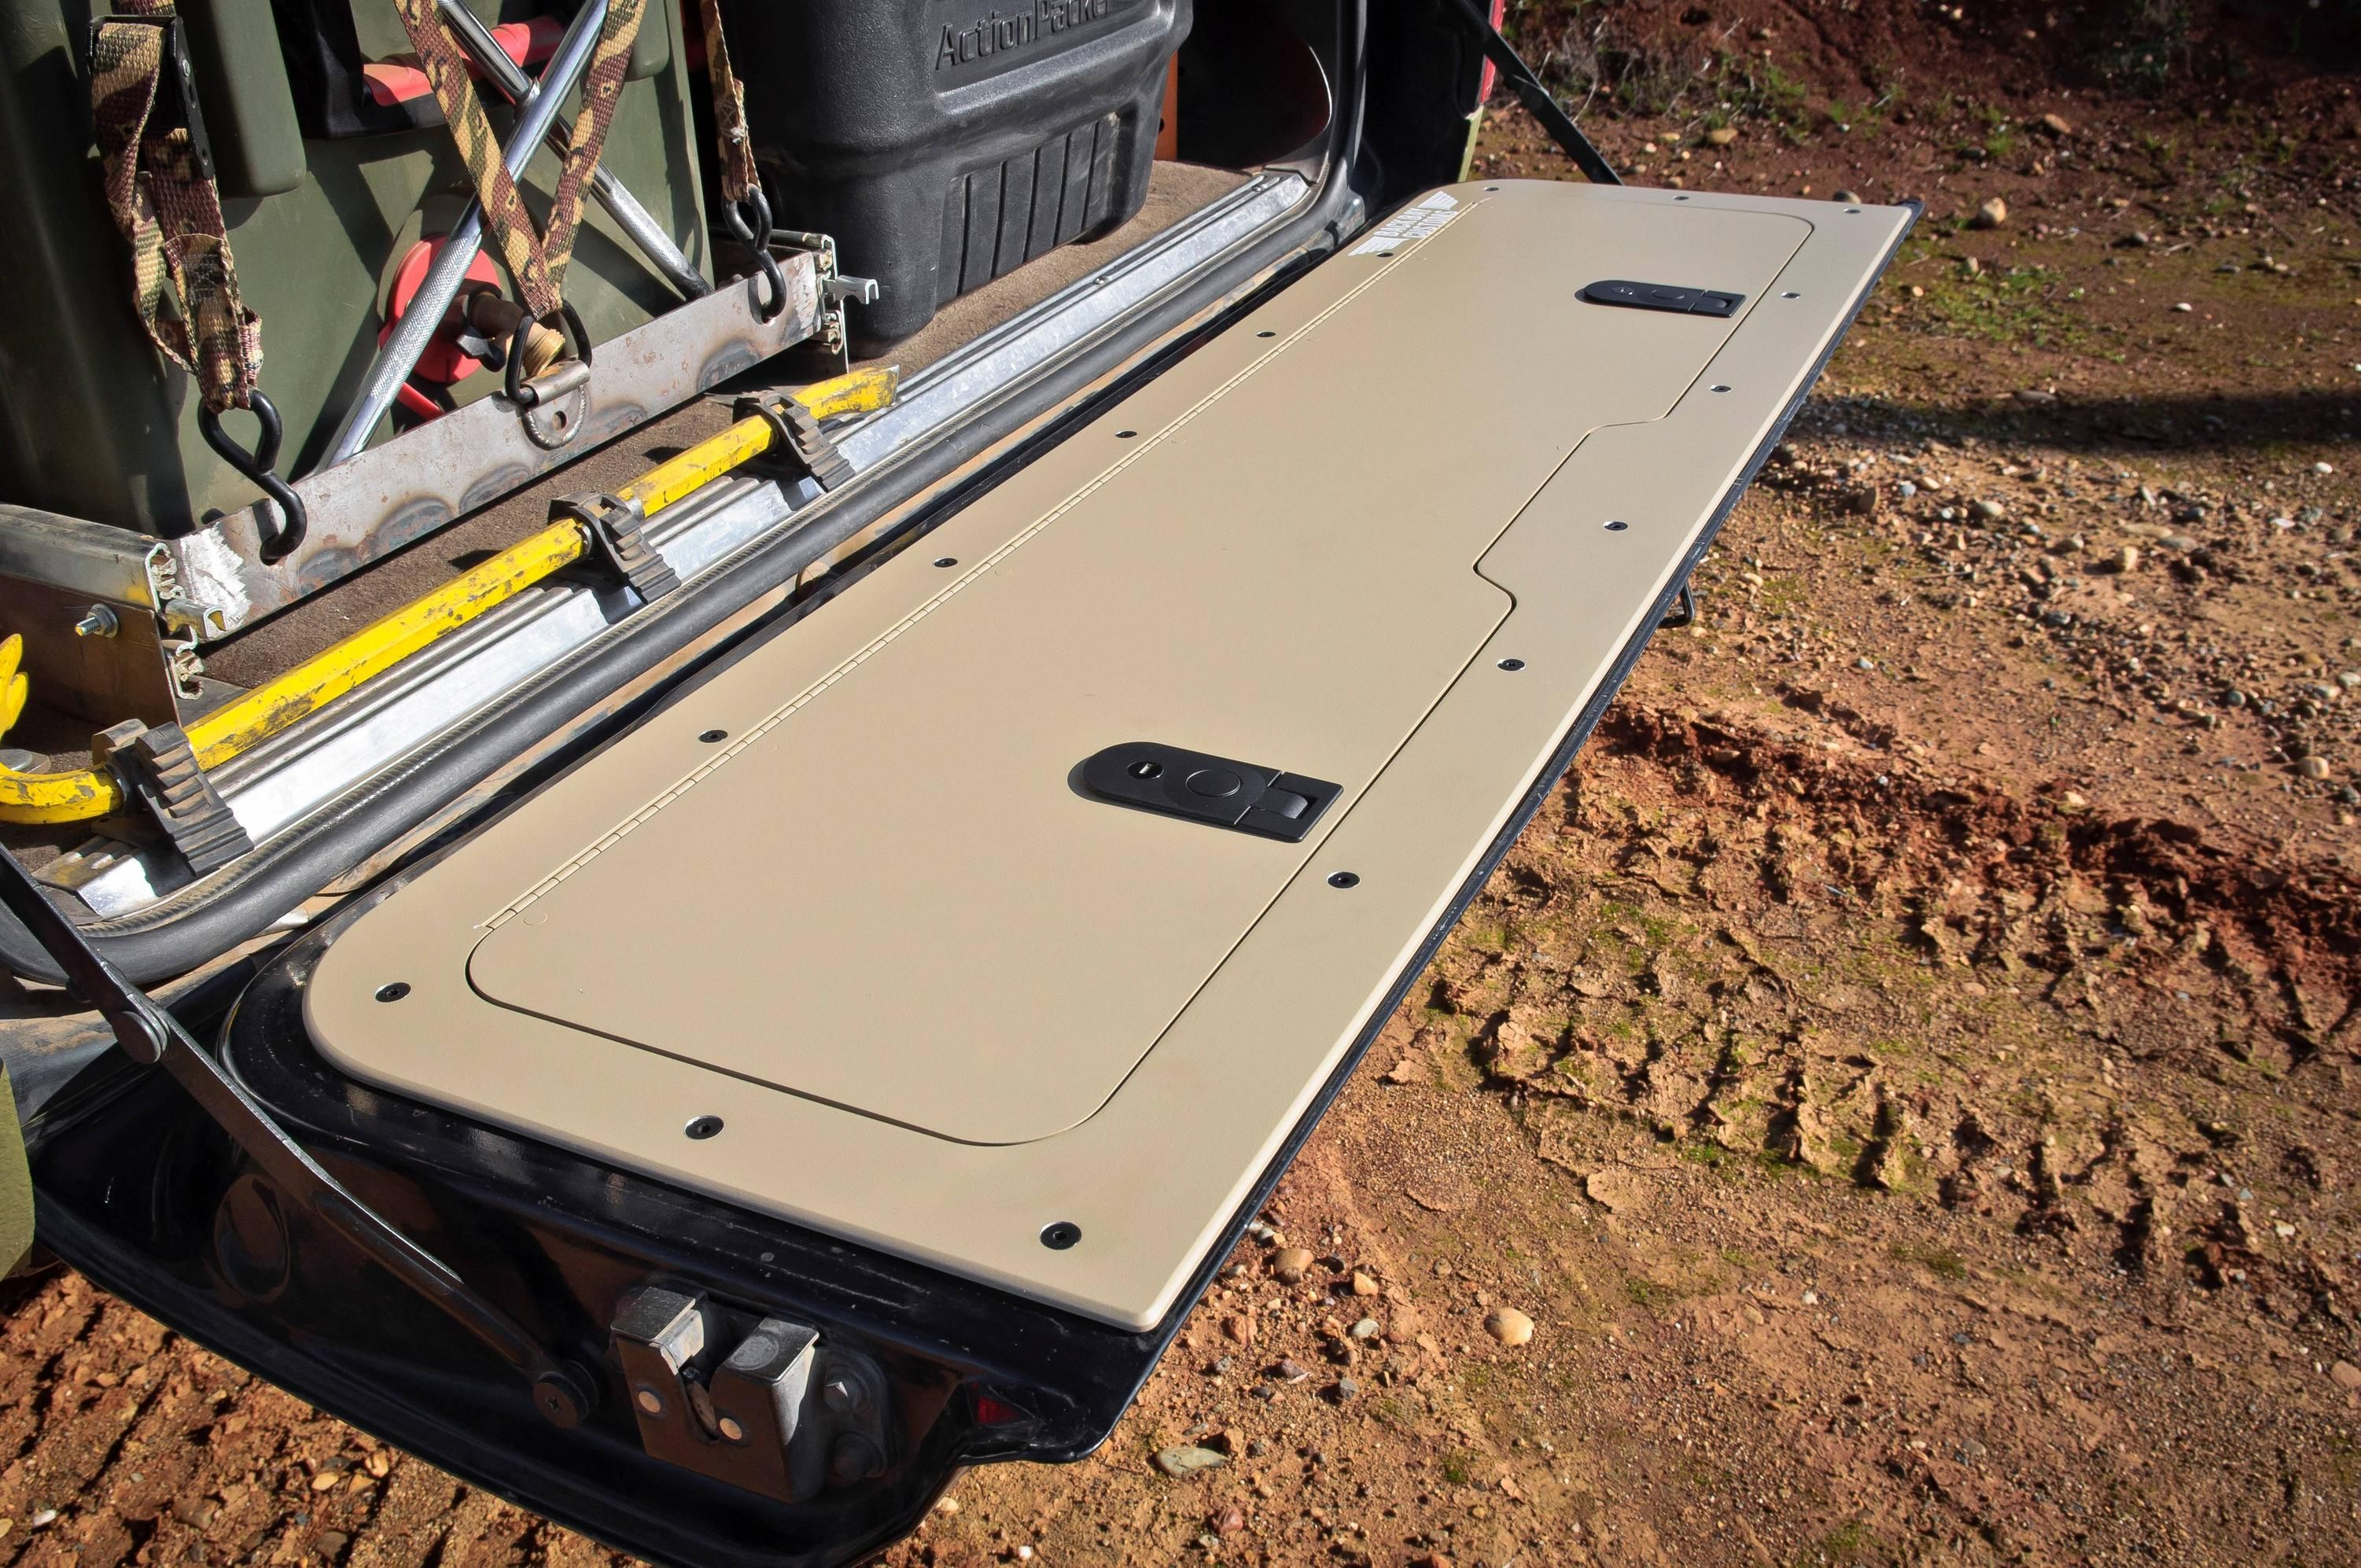 Tailgate Storage Panel For The 80 4x4 Offroad Grime Dubstep Land Cruiser 80 Toyota Cruiser Pickup Trucks Bed